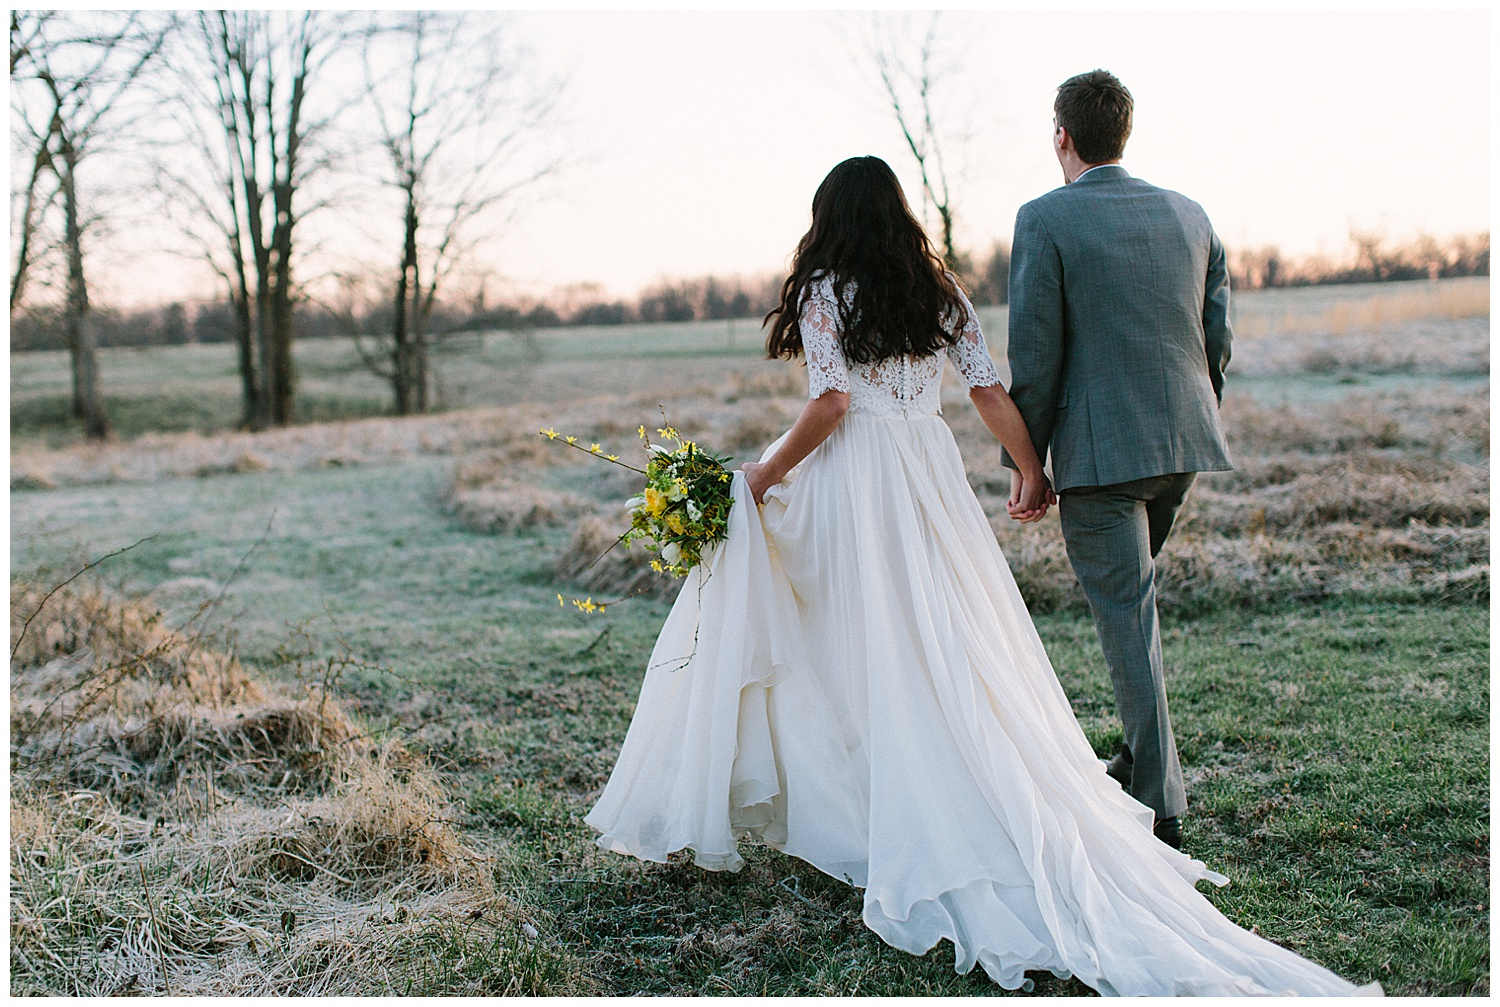 trent.and.kendra.photography.foxhollow.farm.elopement-1.jpg